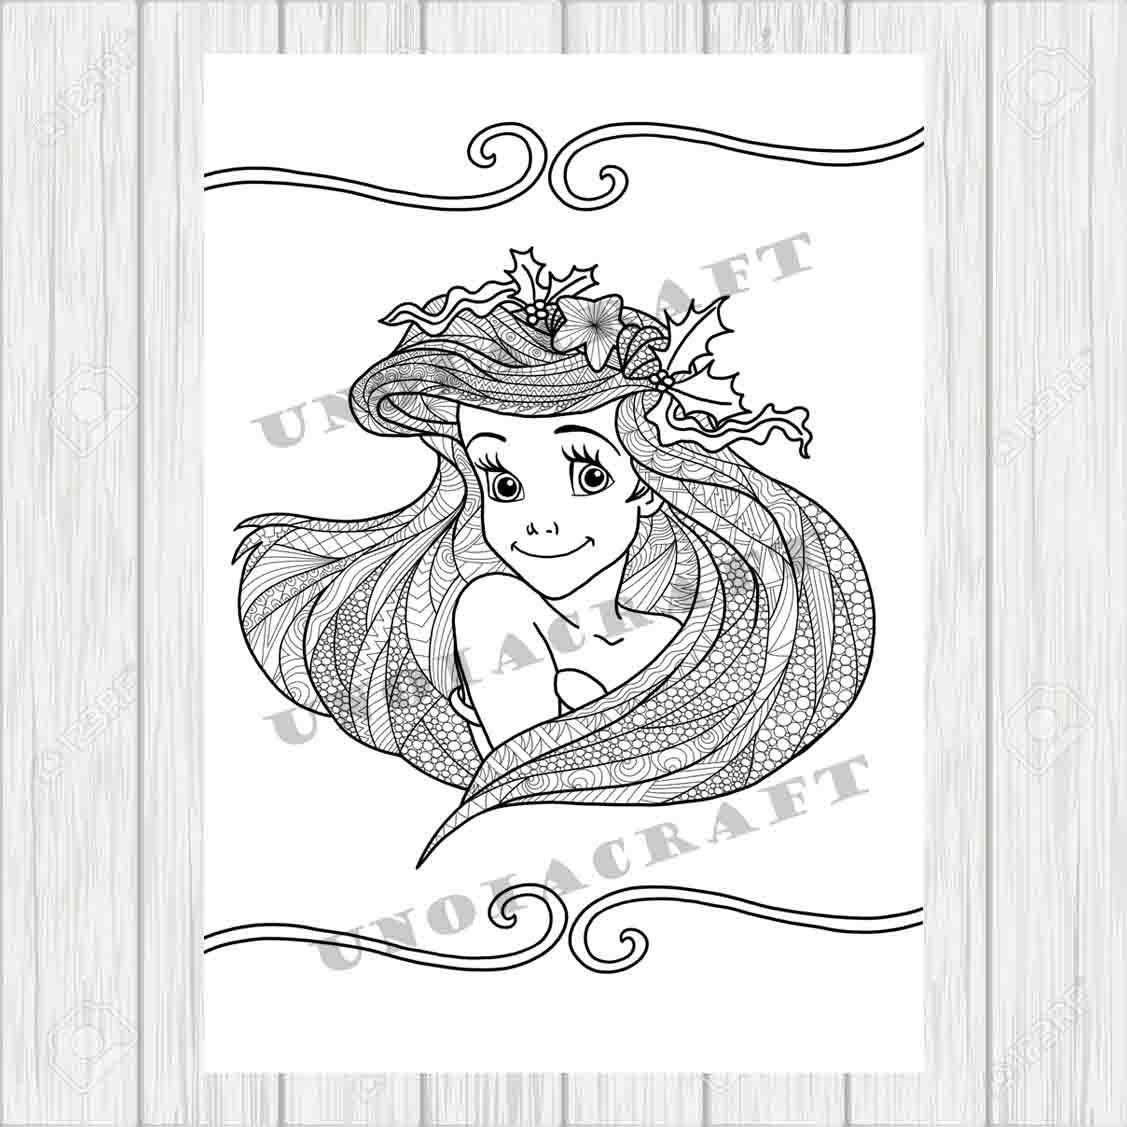 Mermaid coloring, zentangle coloring, colouring sheets